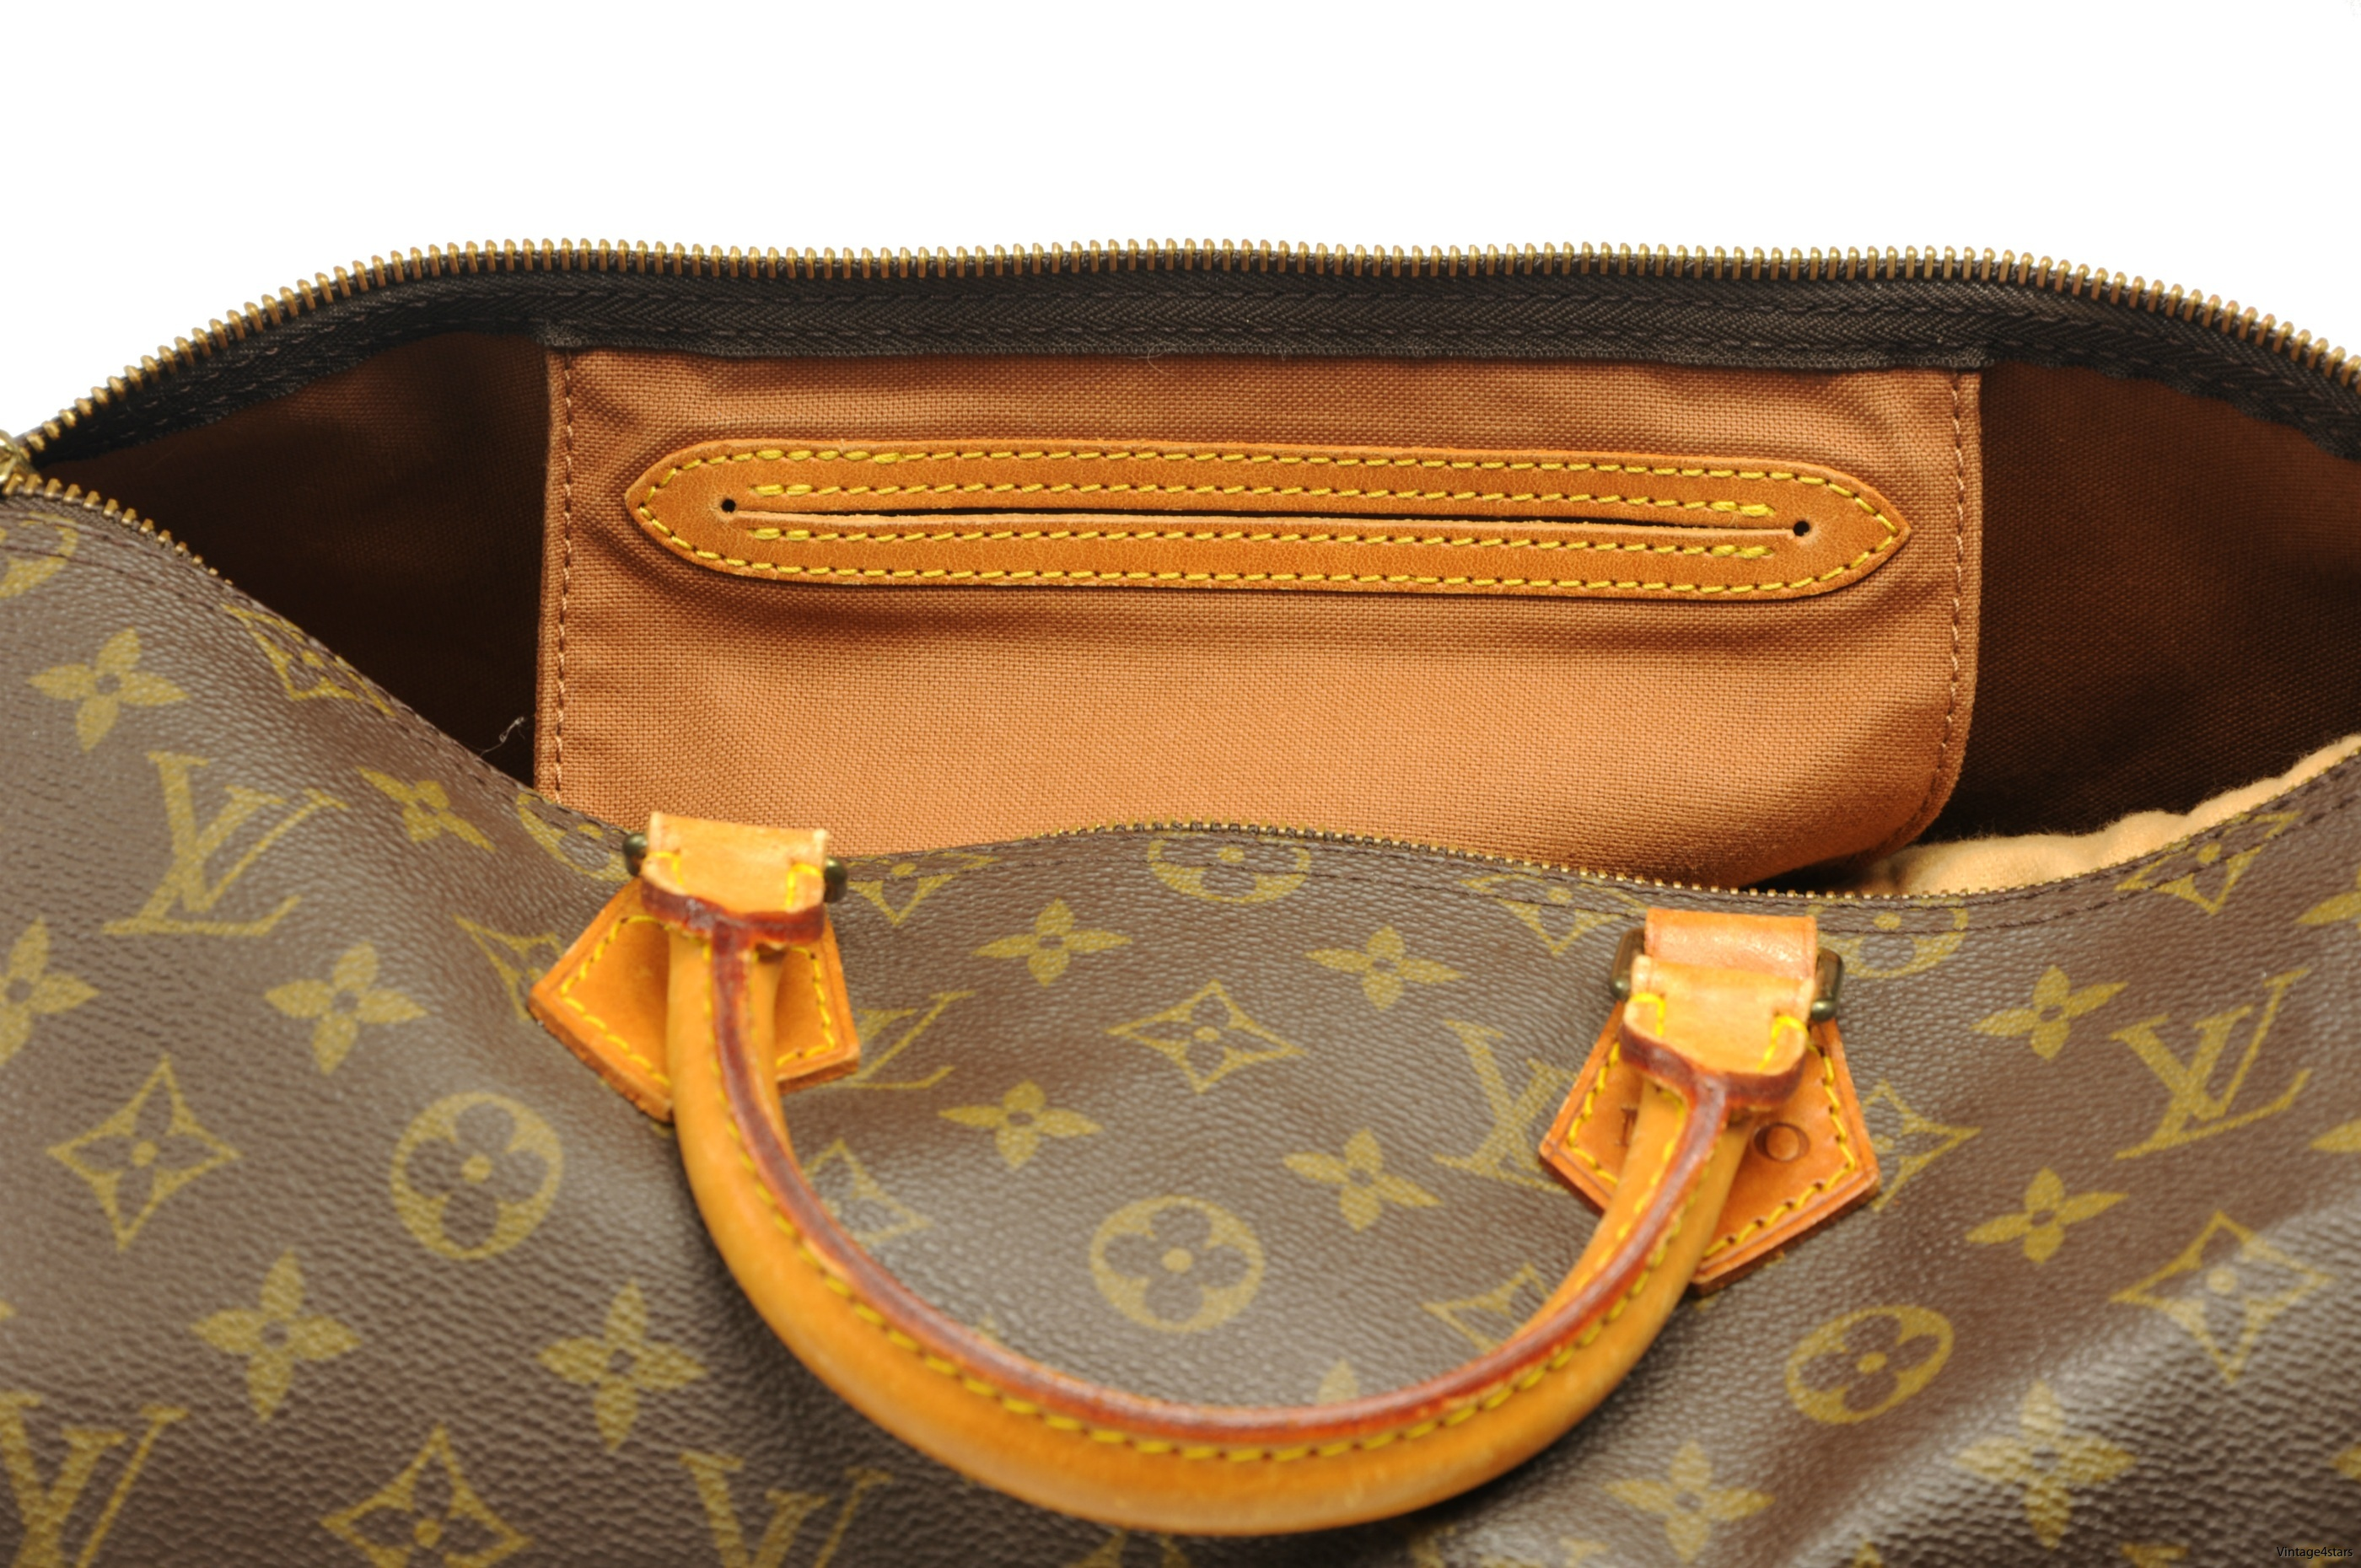 Louis Vuitton Speedy 35 Monogram 11